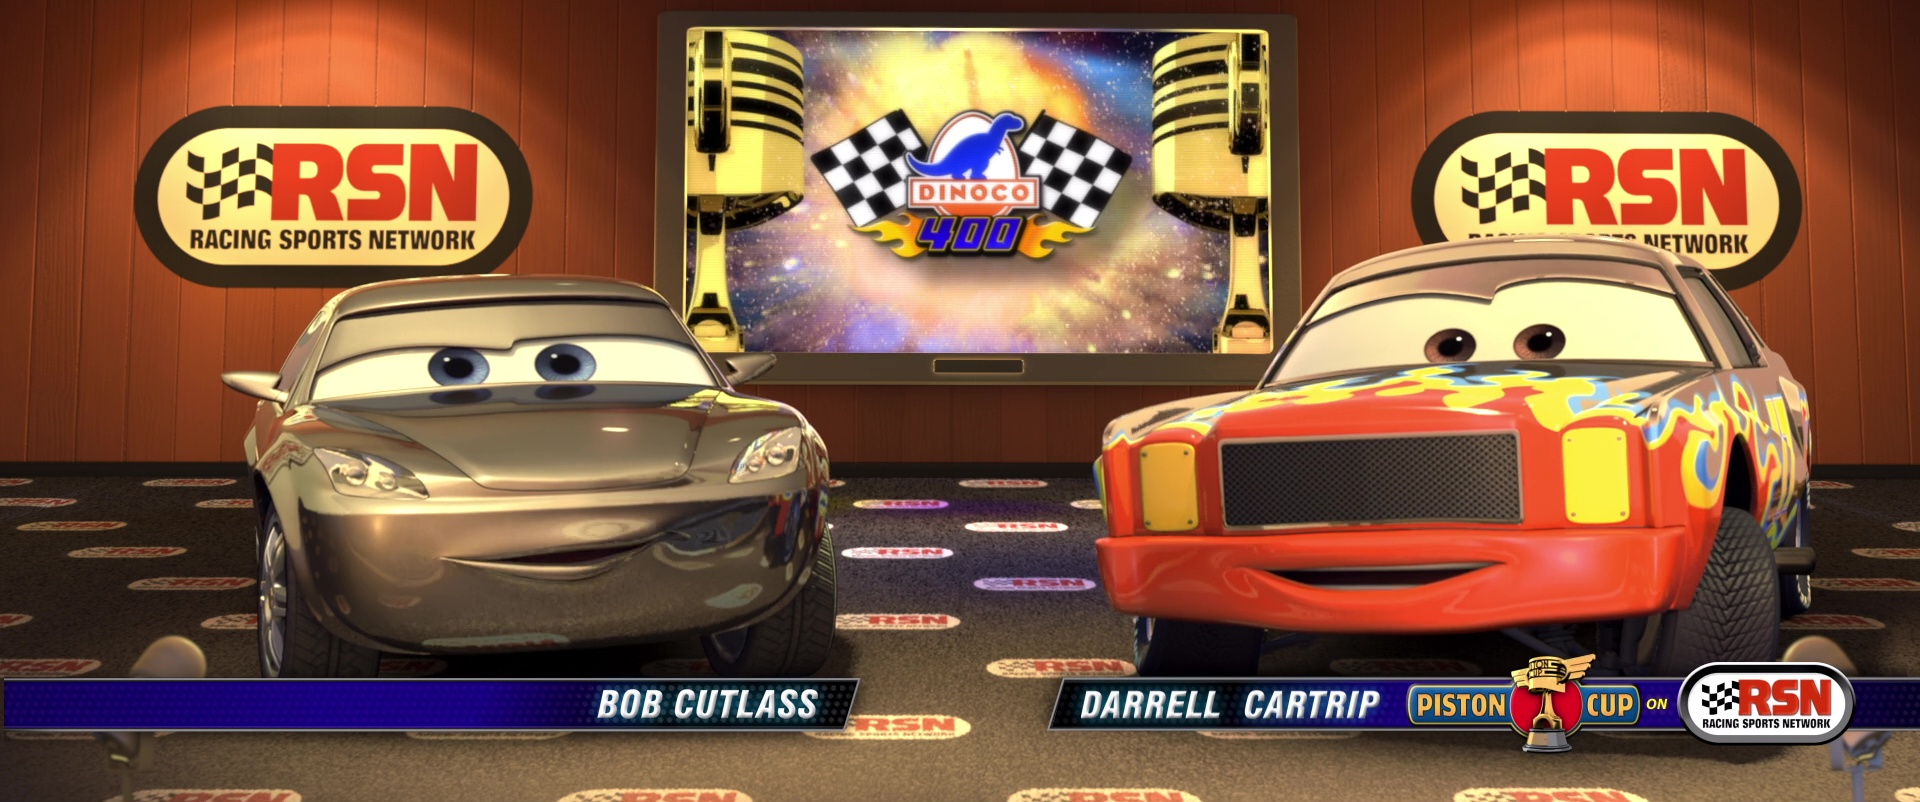 Darrell Cartrip Pixar Wiki Fandom Powered By Wikia